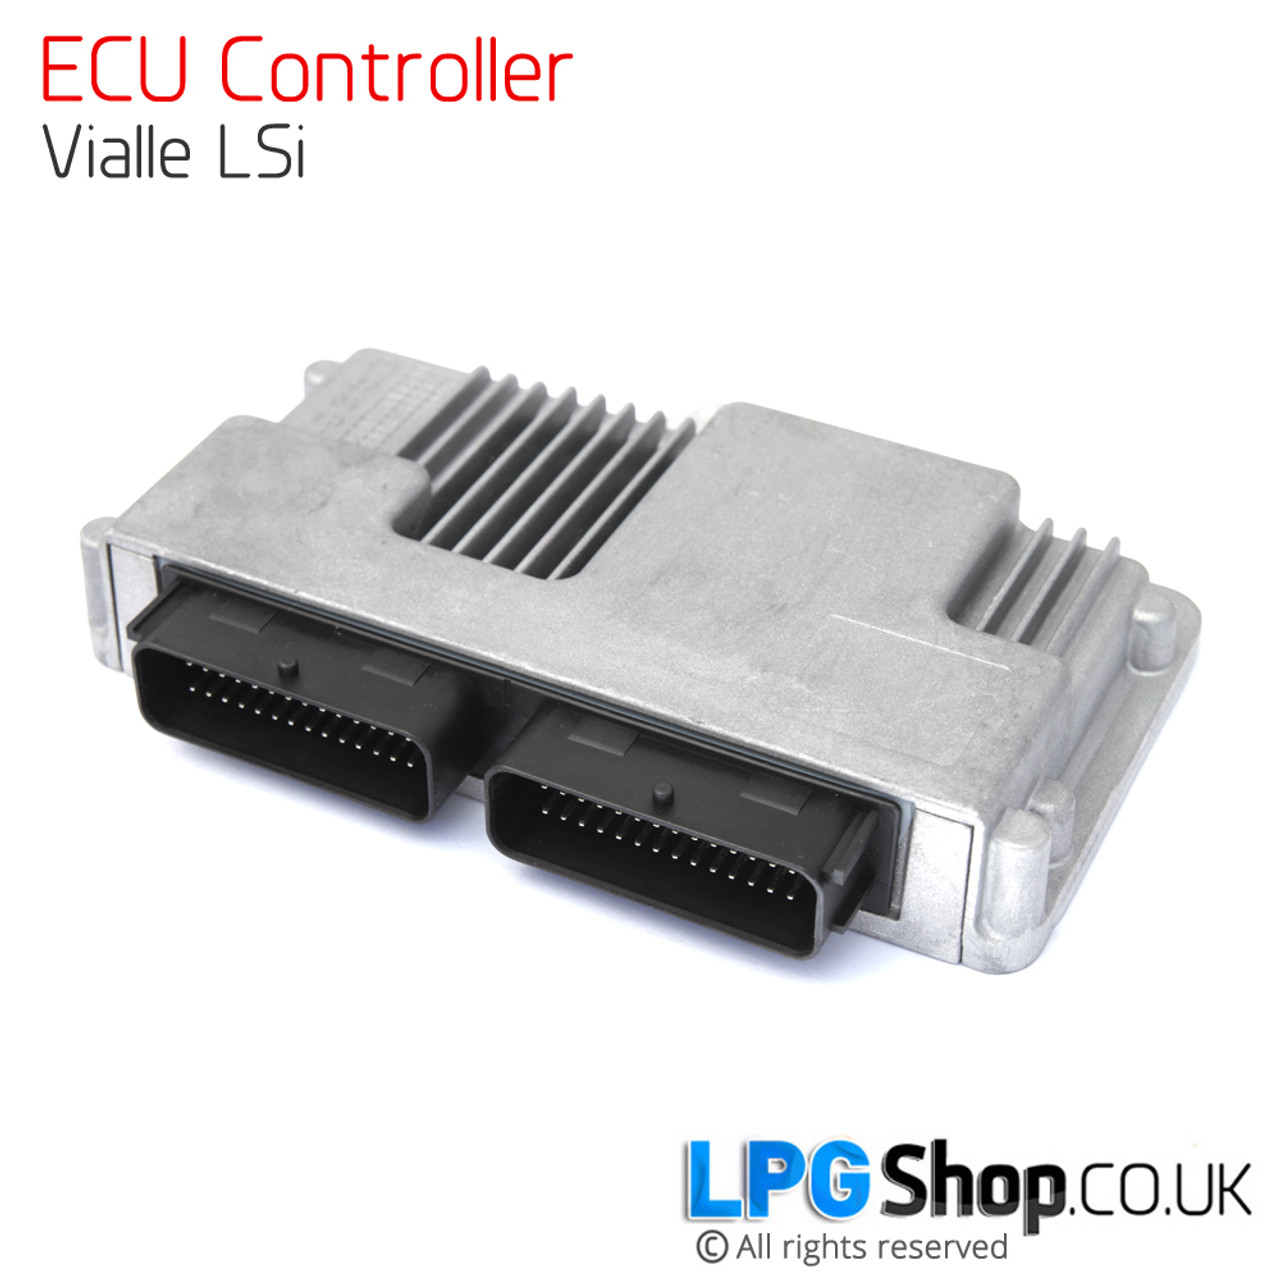 small resolution of  vialle lsi ecu controller liquid lpg autogas sequential injection